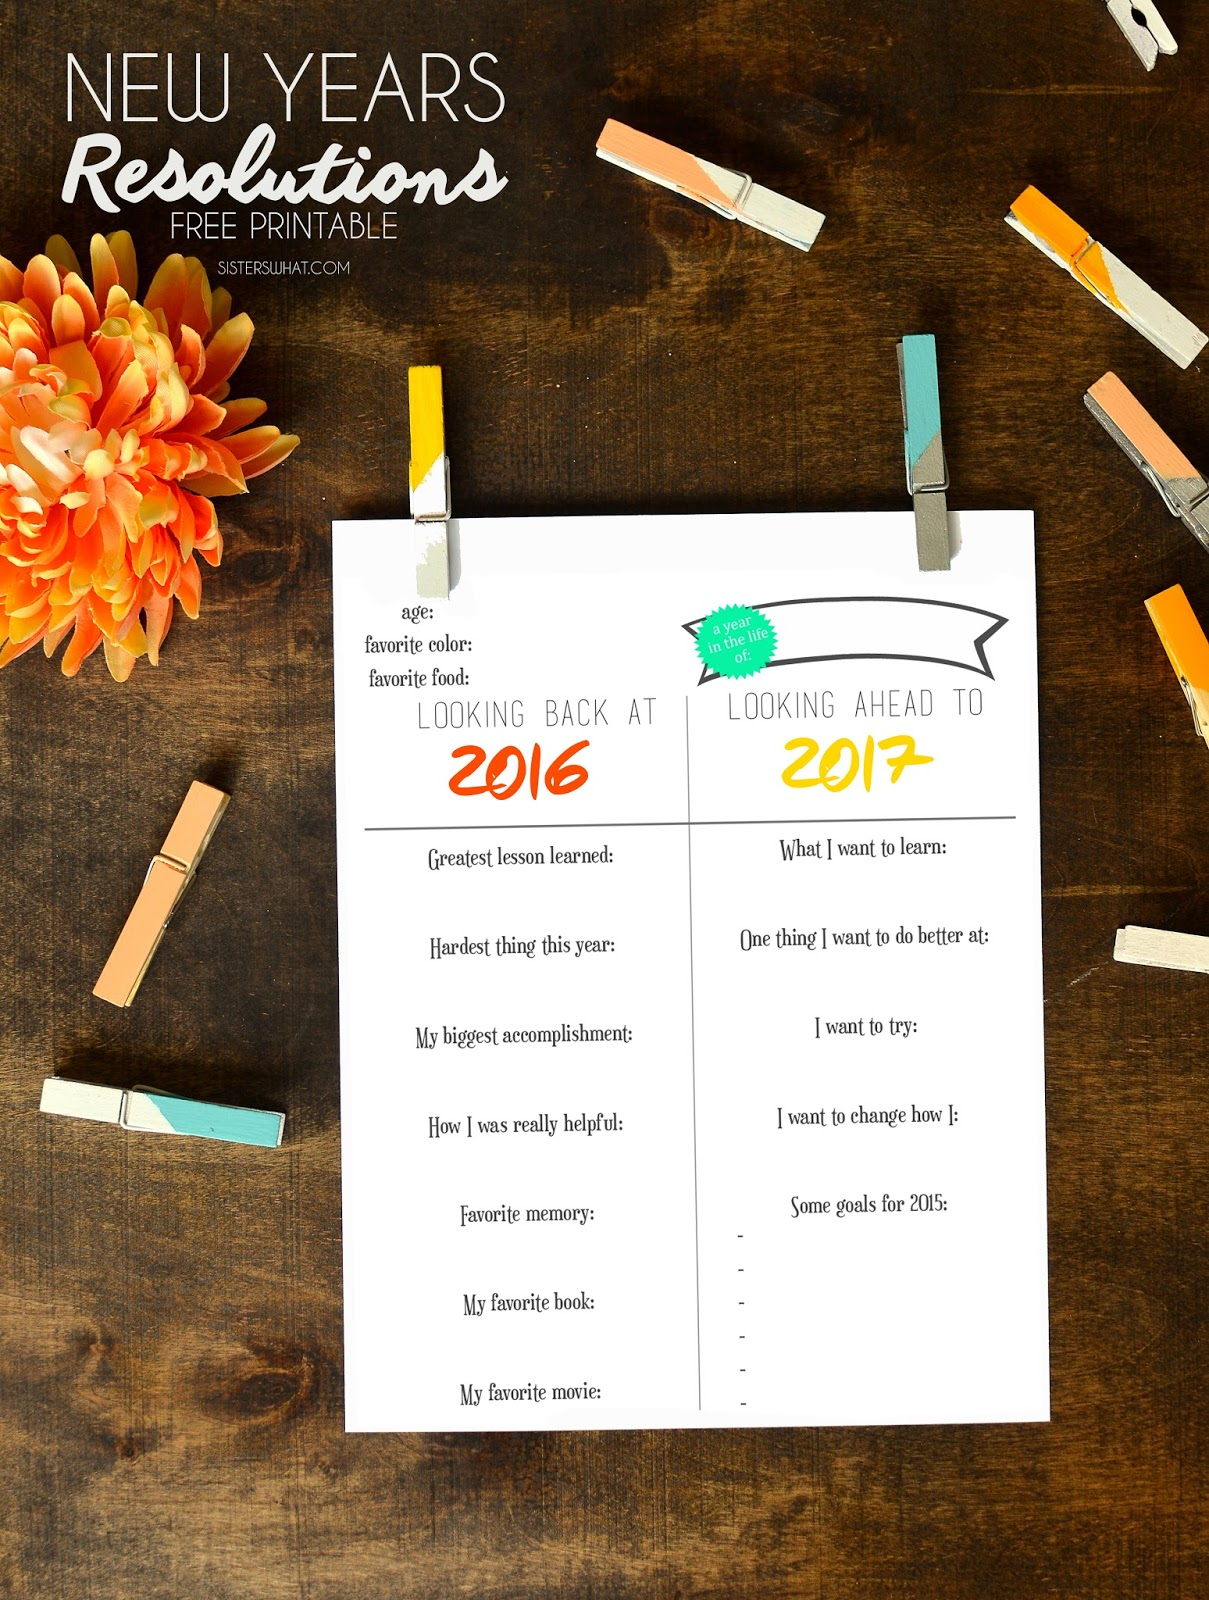 New Year Resolution Free Printable